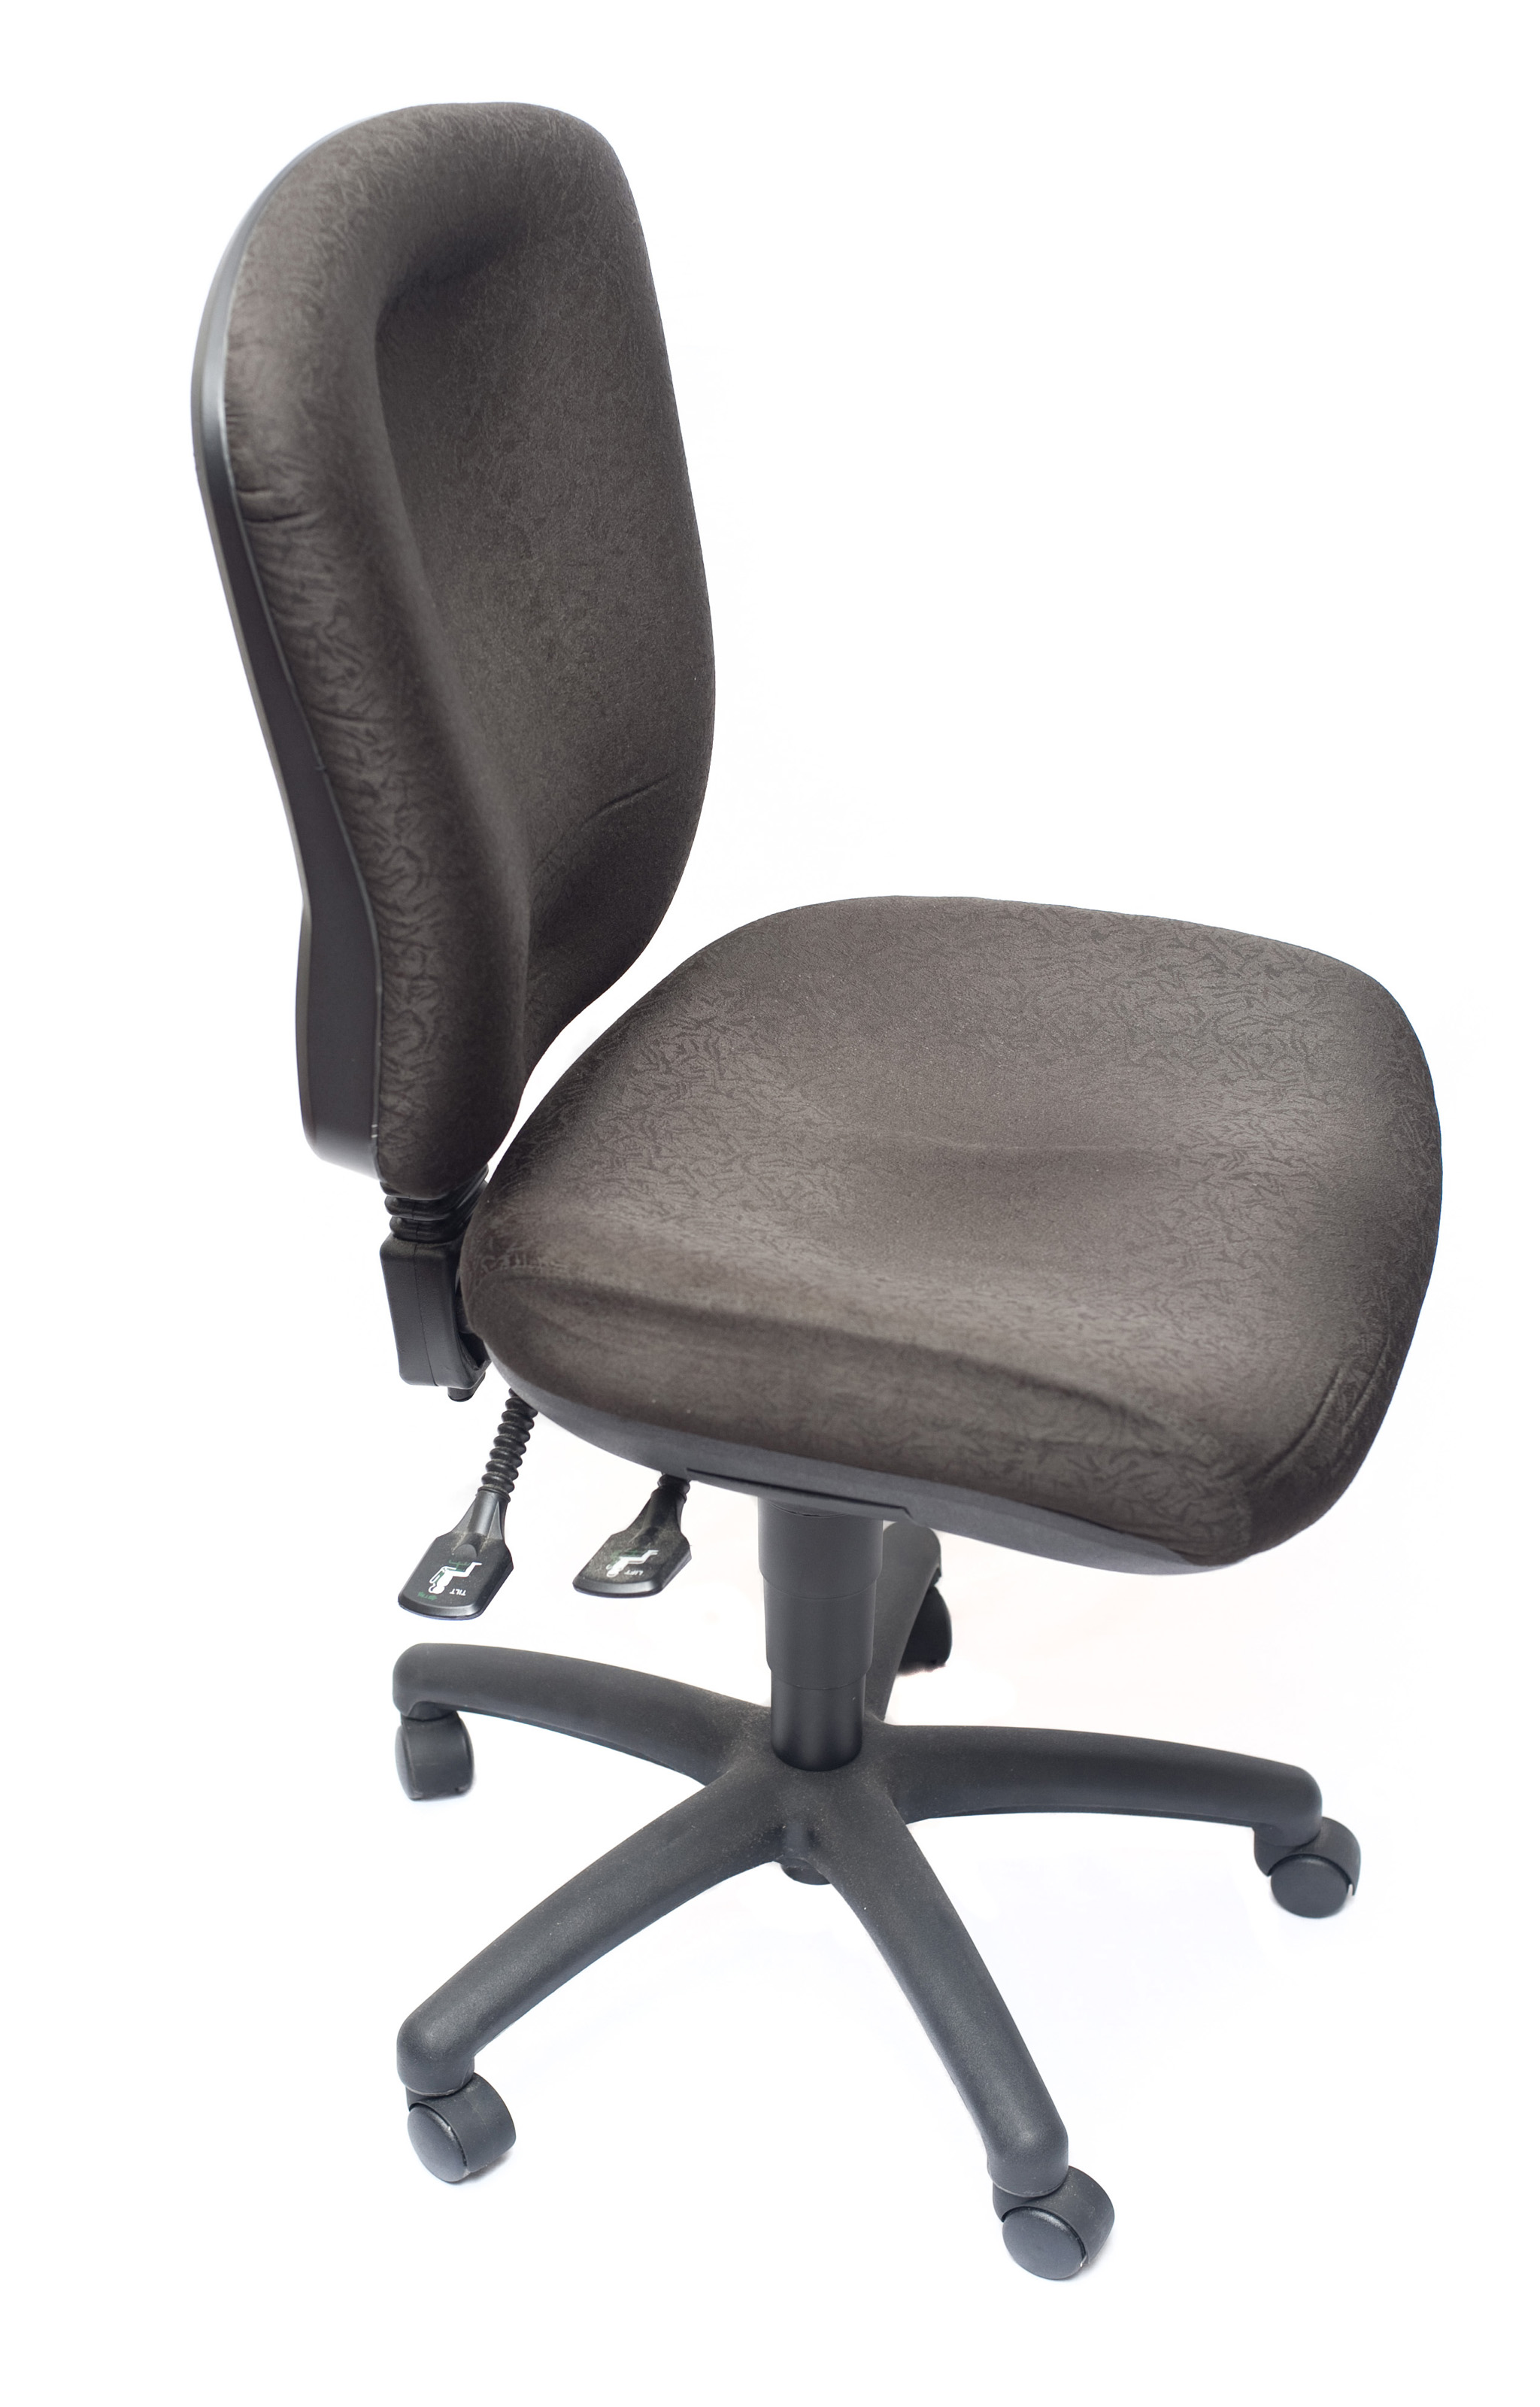 Chair On Wheels Free Stock Photo 5379 Comfortable Black Office Chair Freeimageslive